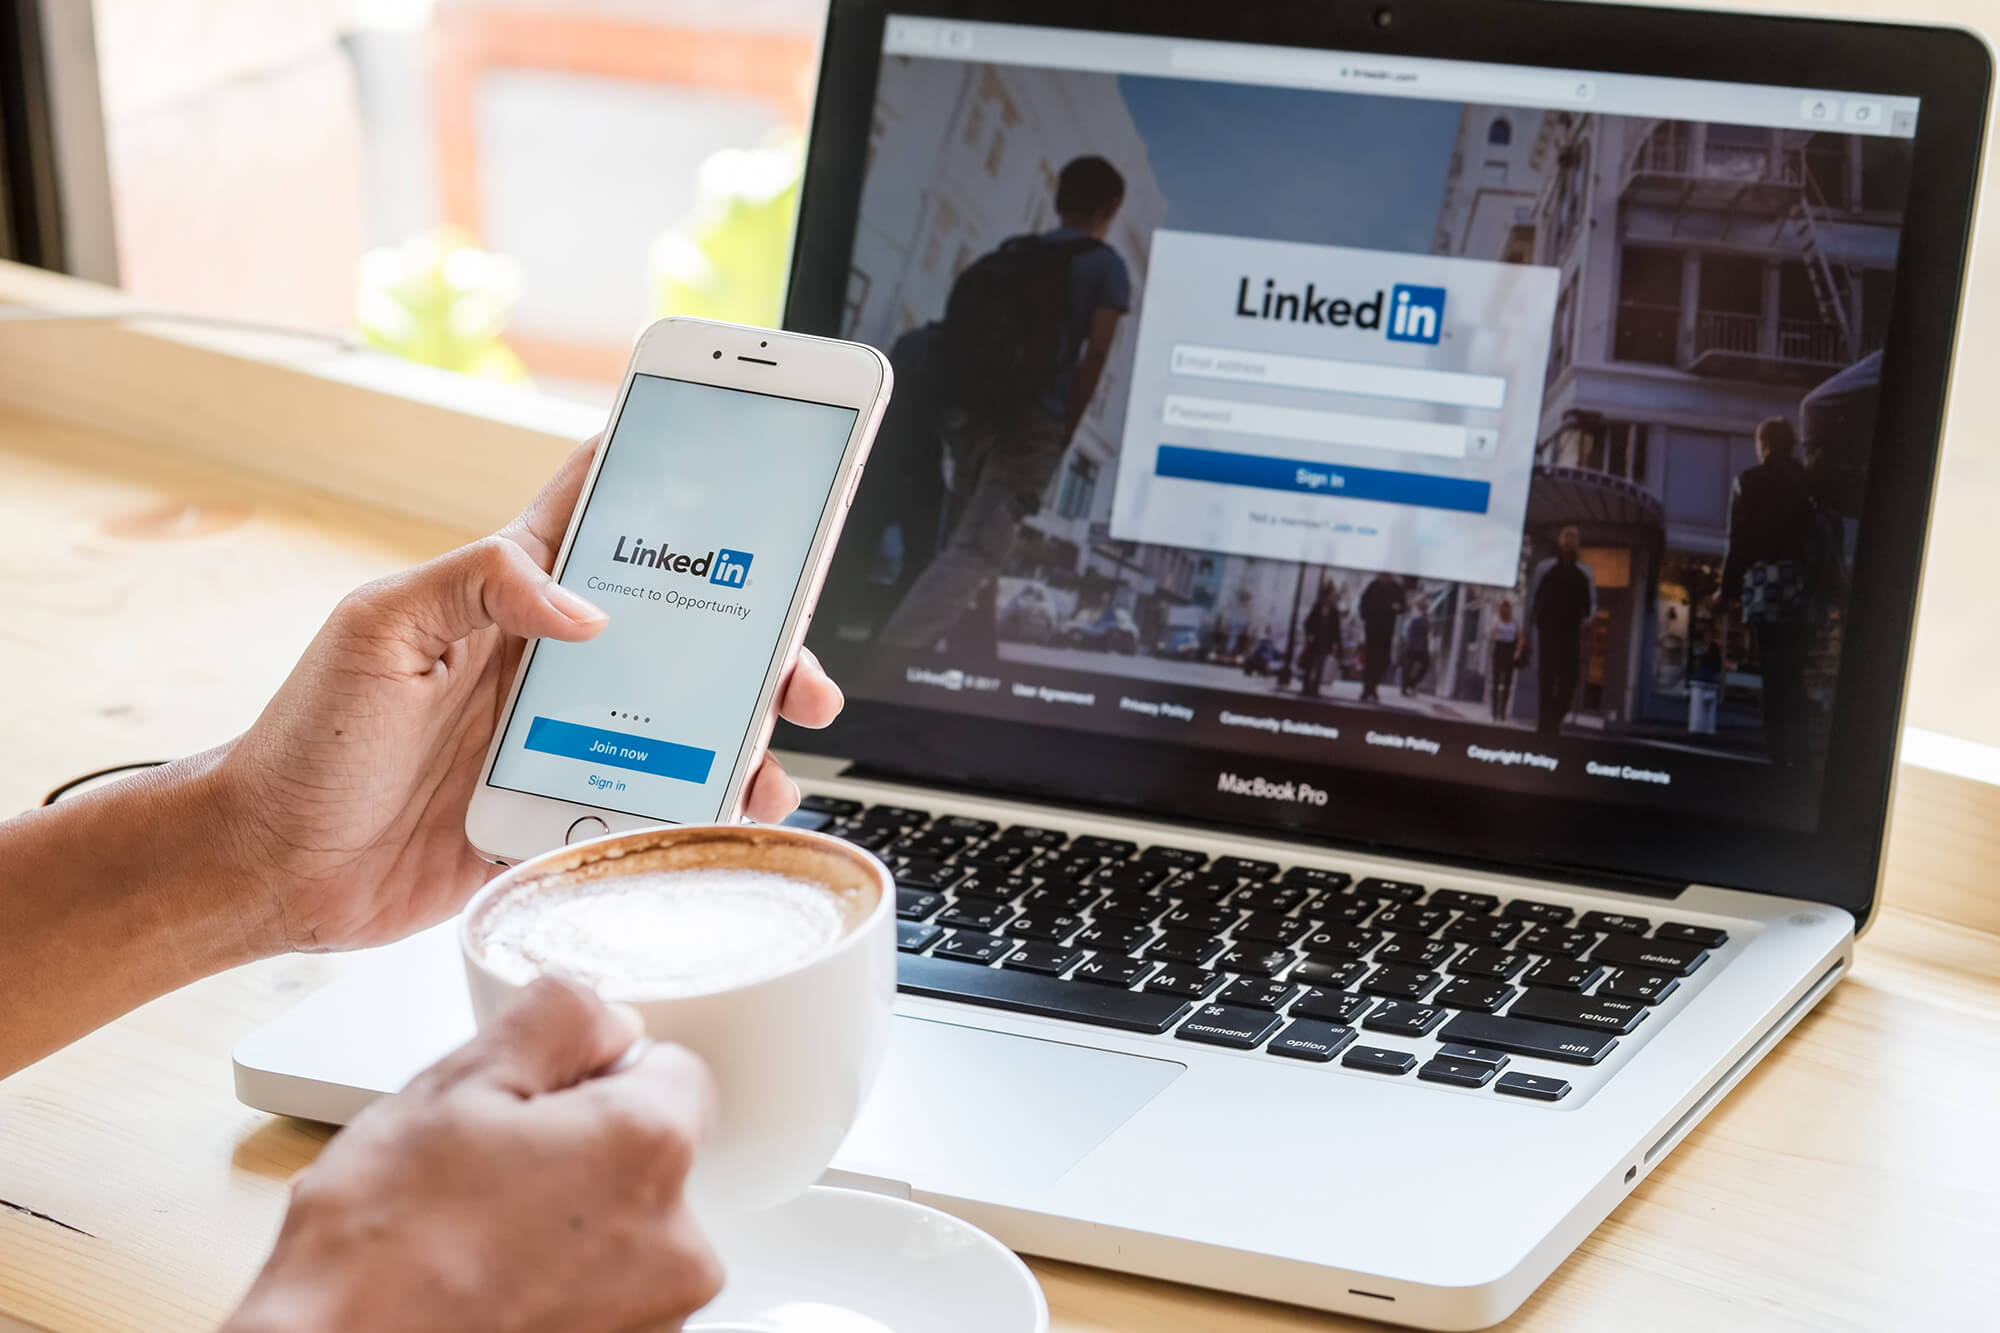 4 Easy Steps to Optimize Your LinkedIn Company Page